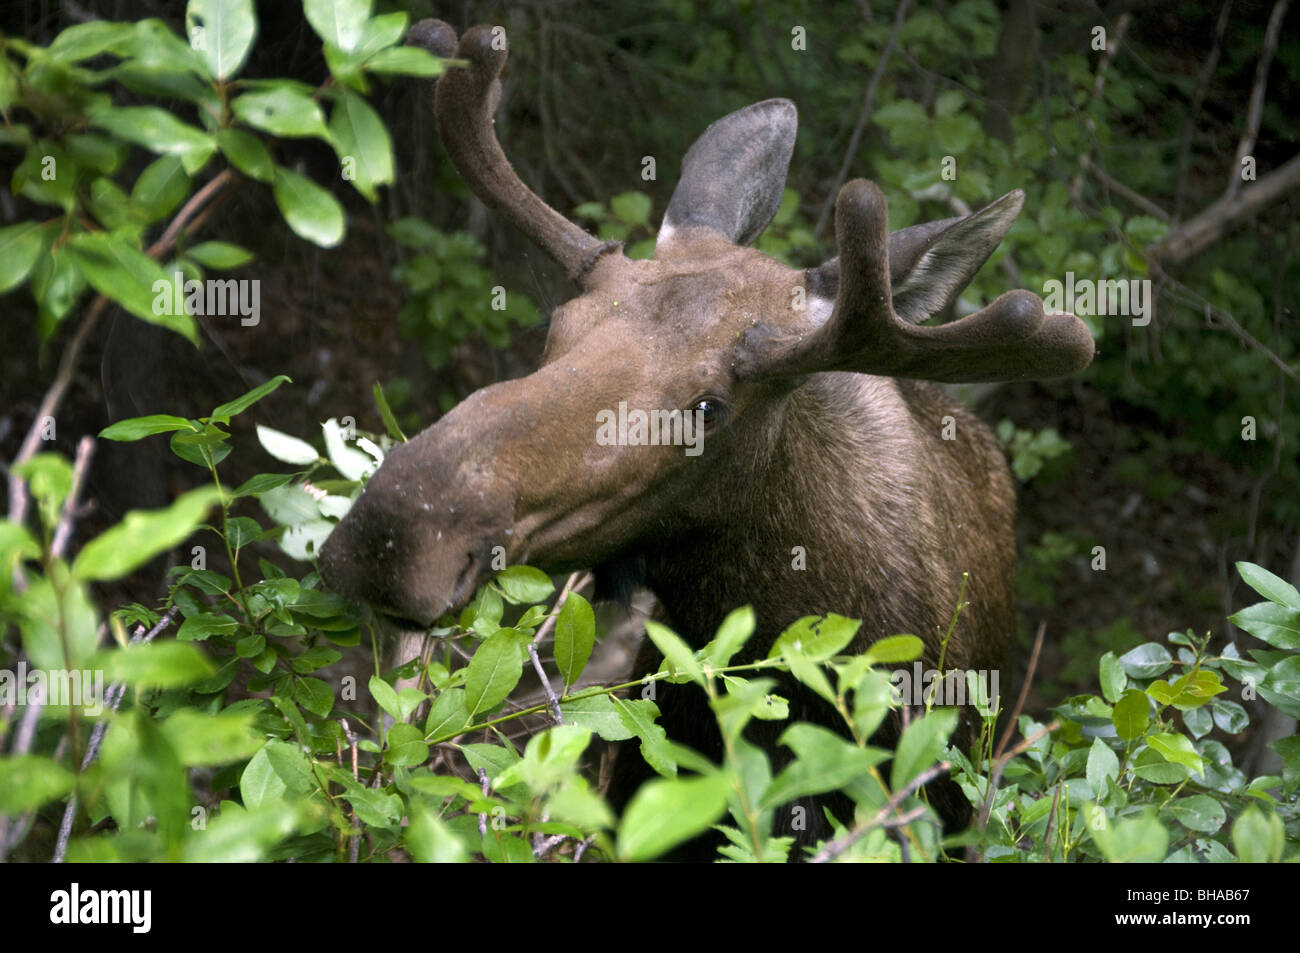 close up of a moose eating foliage southcentral alaska summer